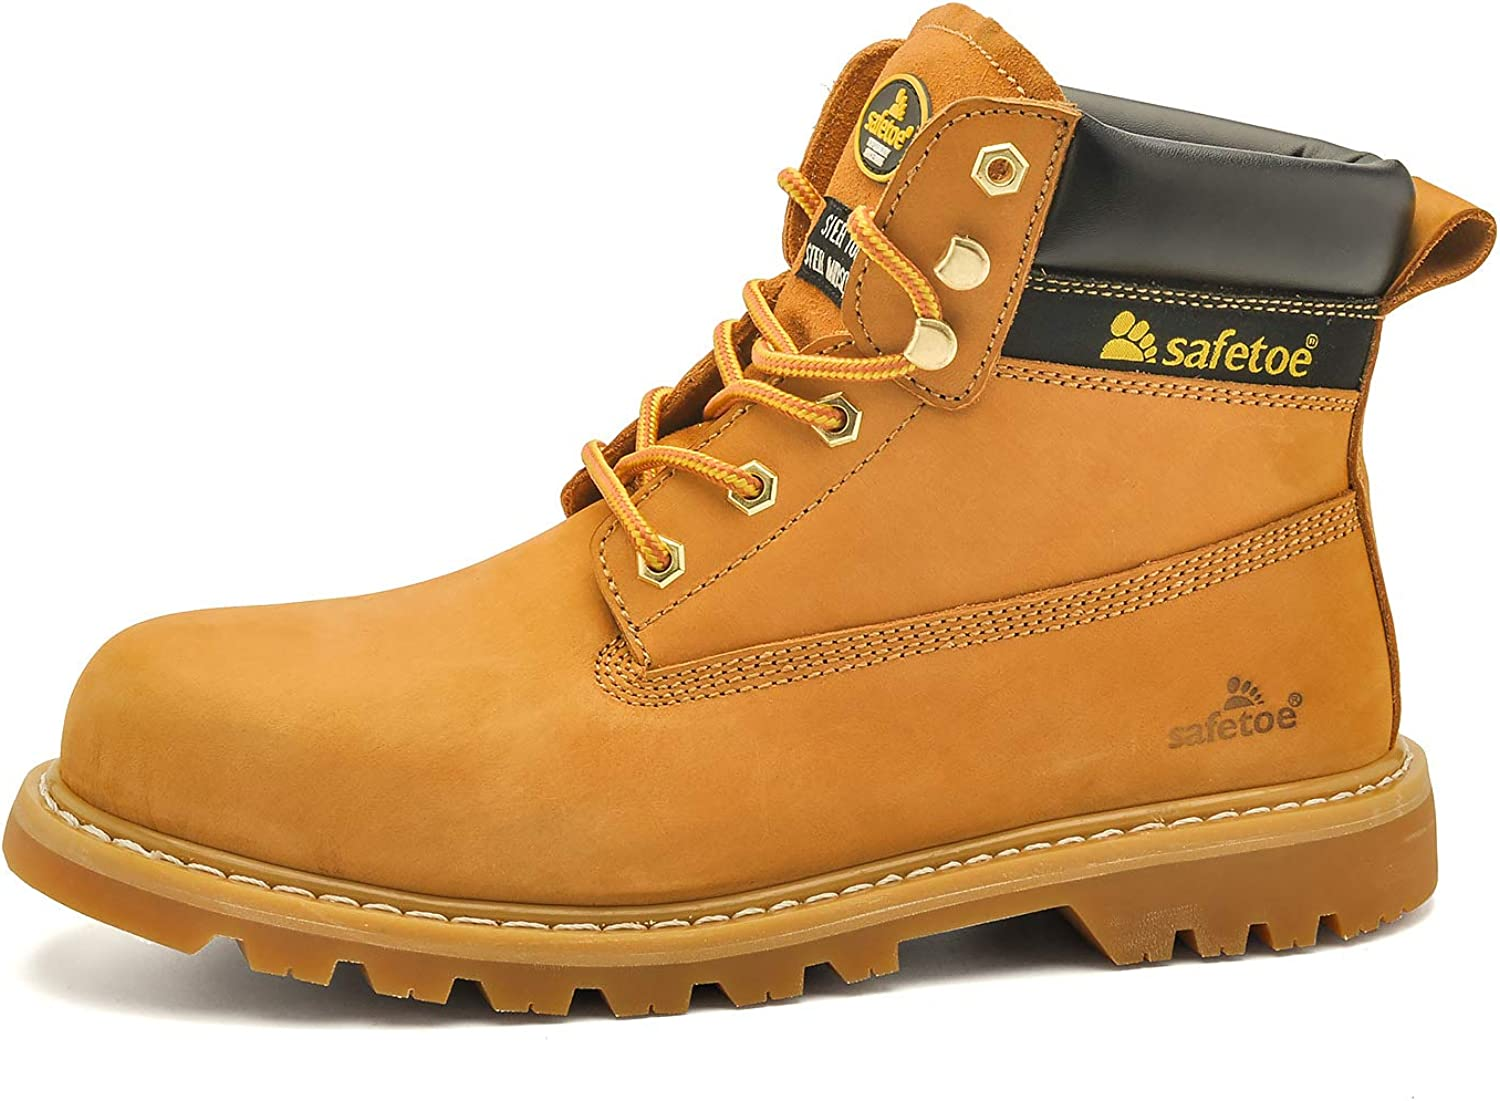 SAFETOE Steel Toe Work Boots for Women Price reduction Safety Manufacturer regenerated product Men Waterproof Boo